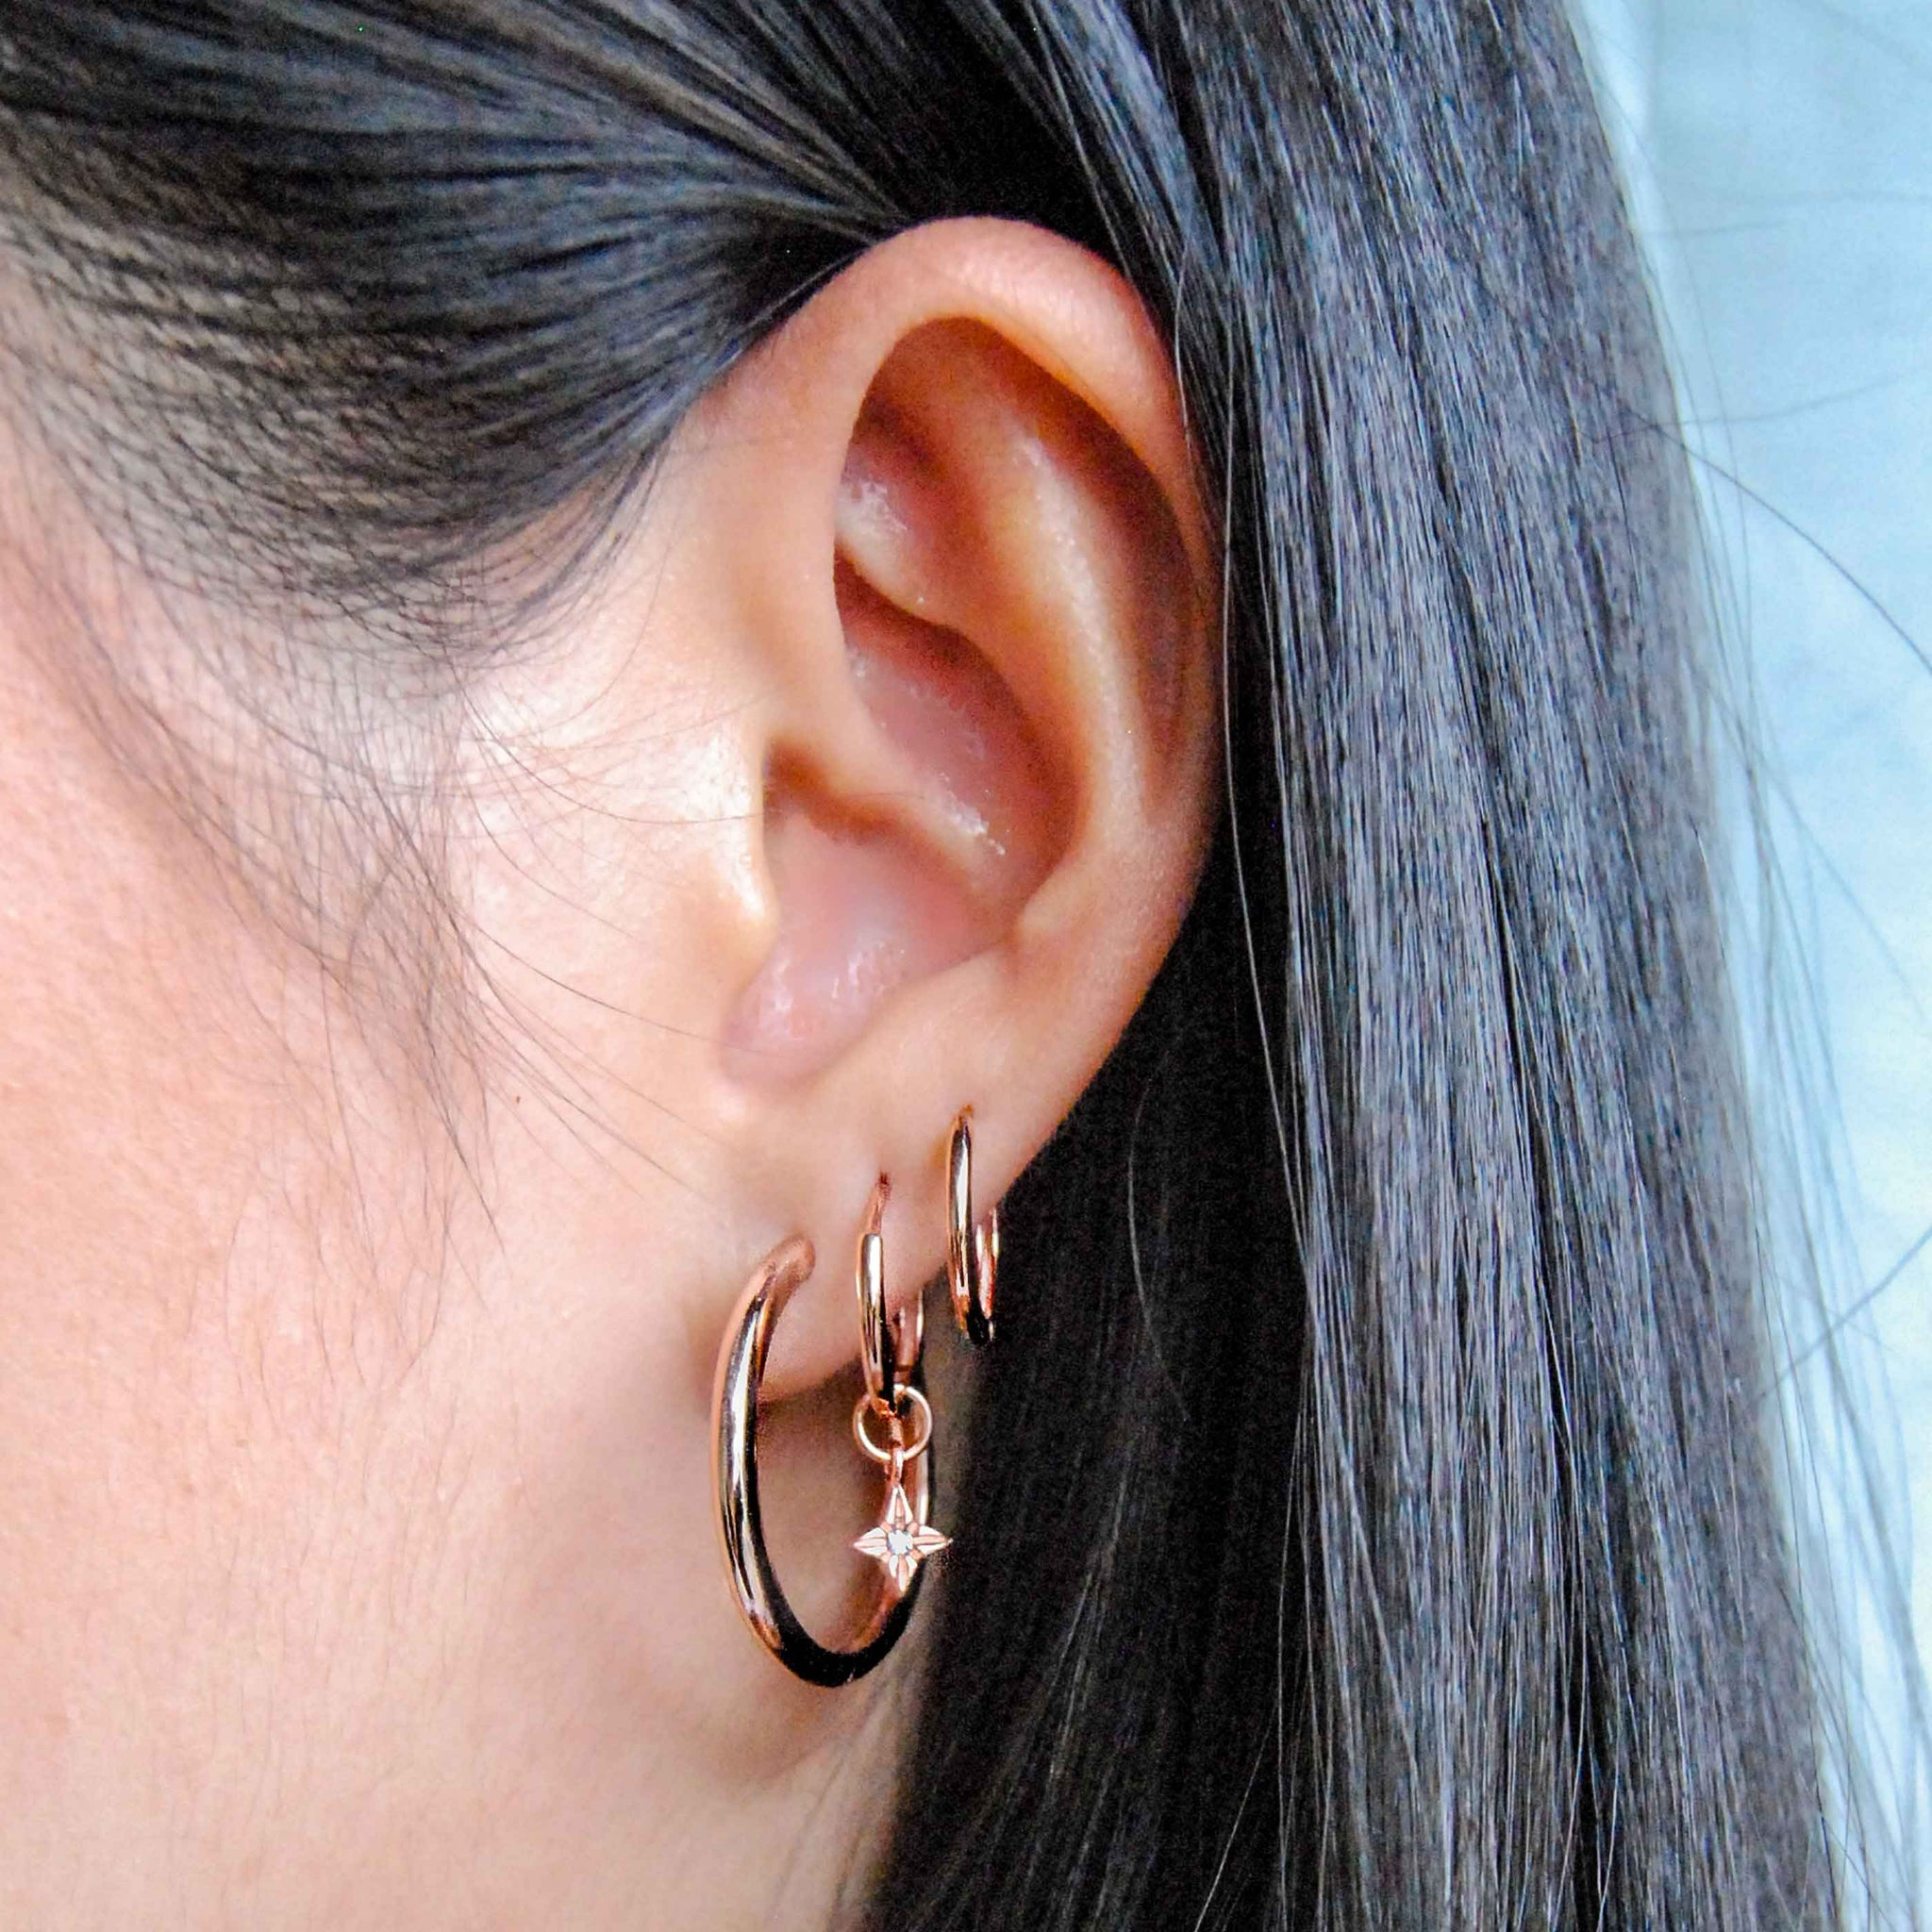 Etched Star Hoops in Rose Gold worn with simple hinge hoops in rose gold